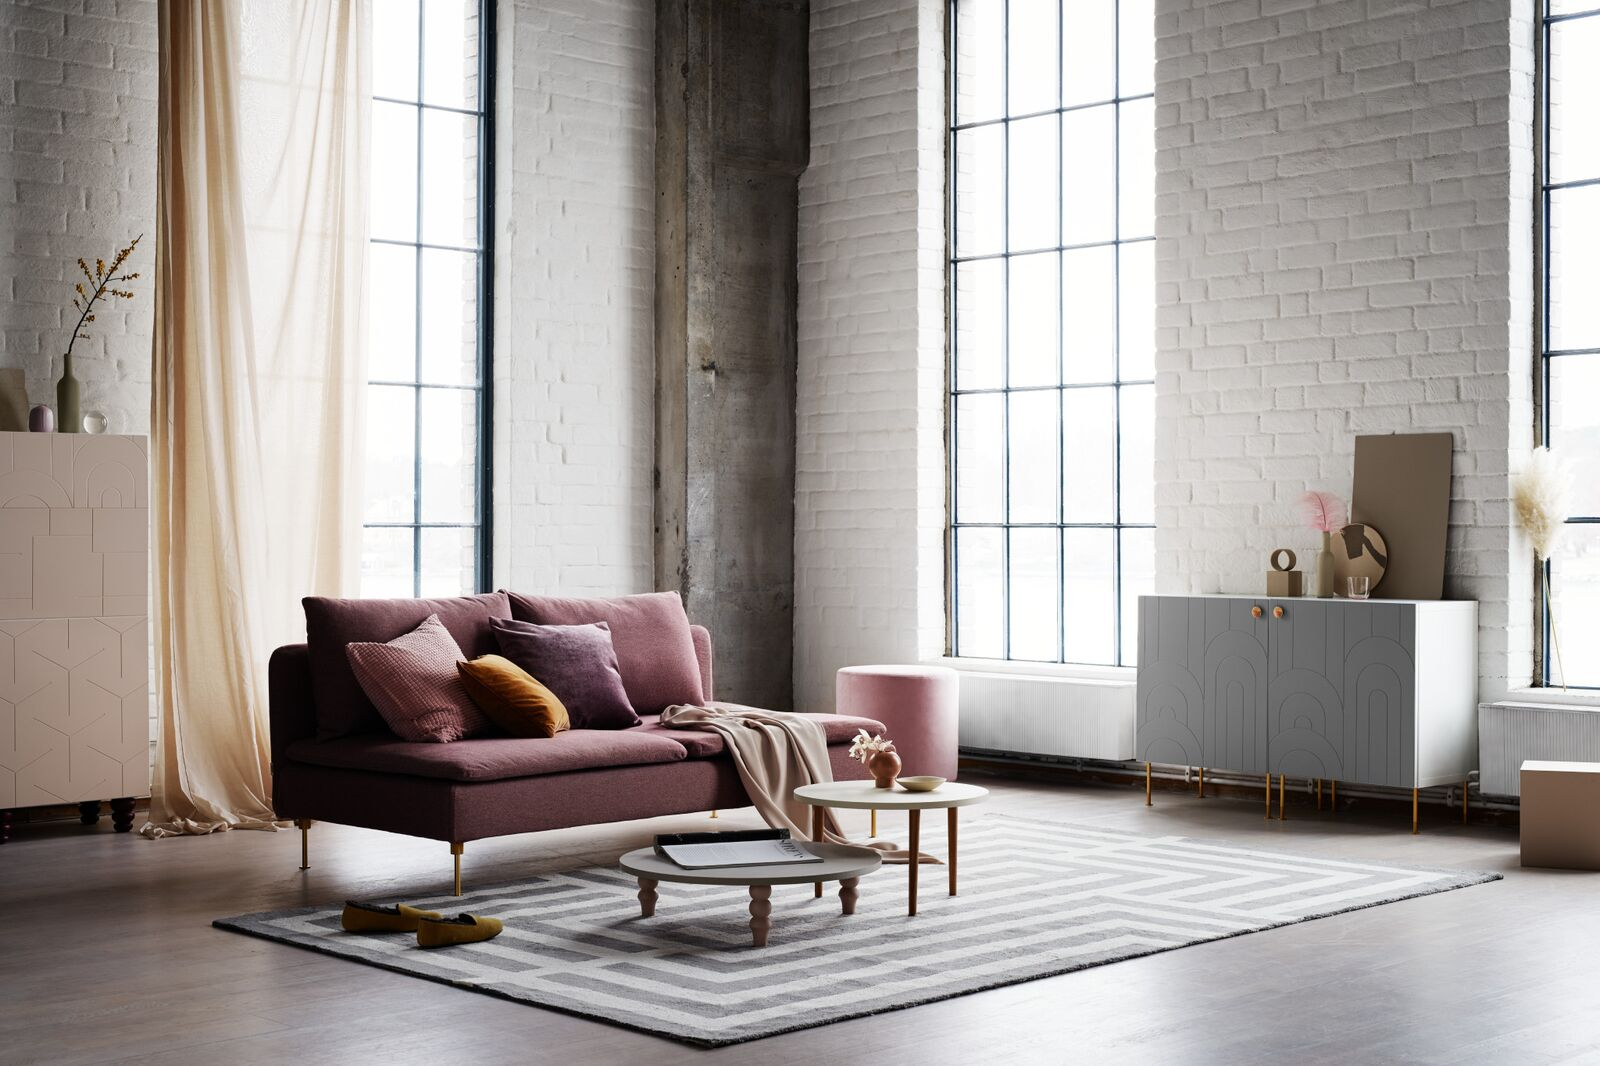 Prettypegs IKEA Living Room with pink couch, rug, and gray furniture